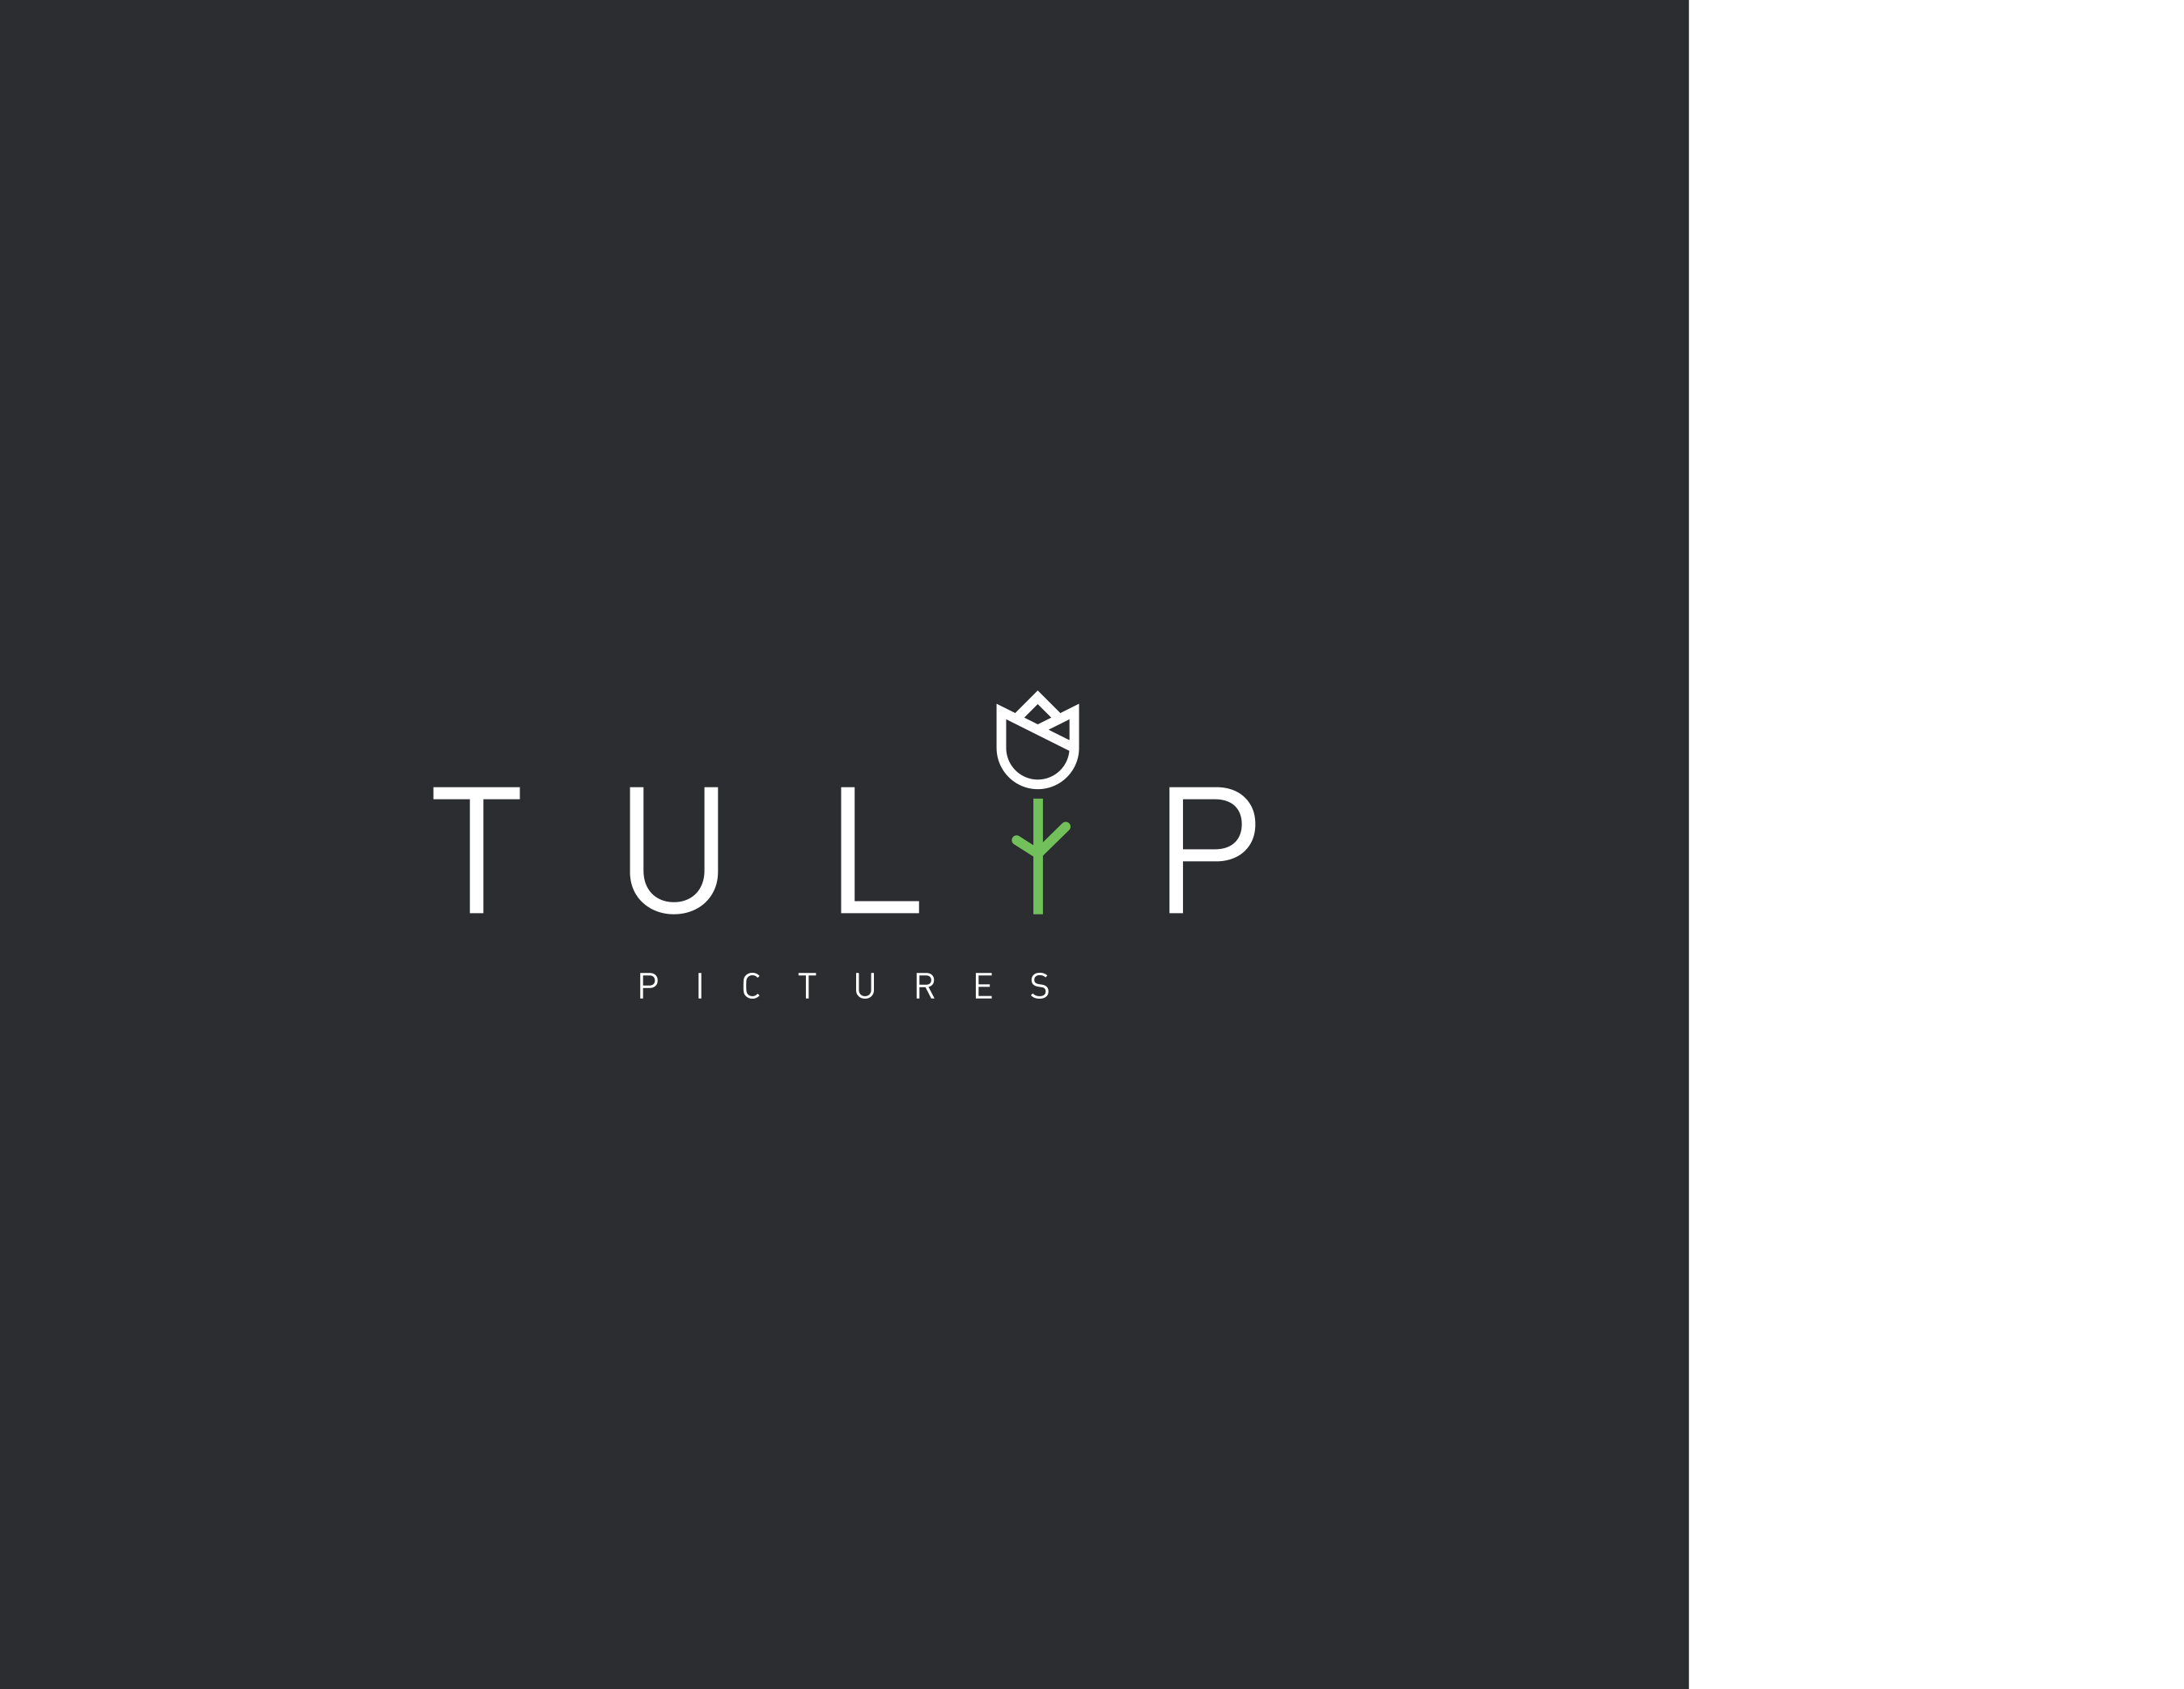 Tulip Pictures is founded by Lorena Villarreal (the director of Silencio) and the first theatrical release in the United States.